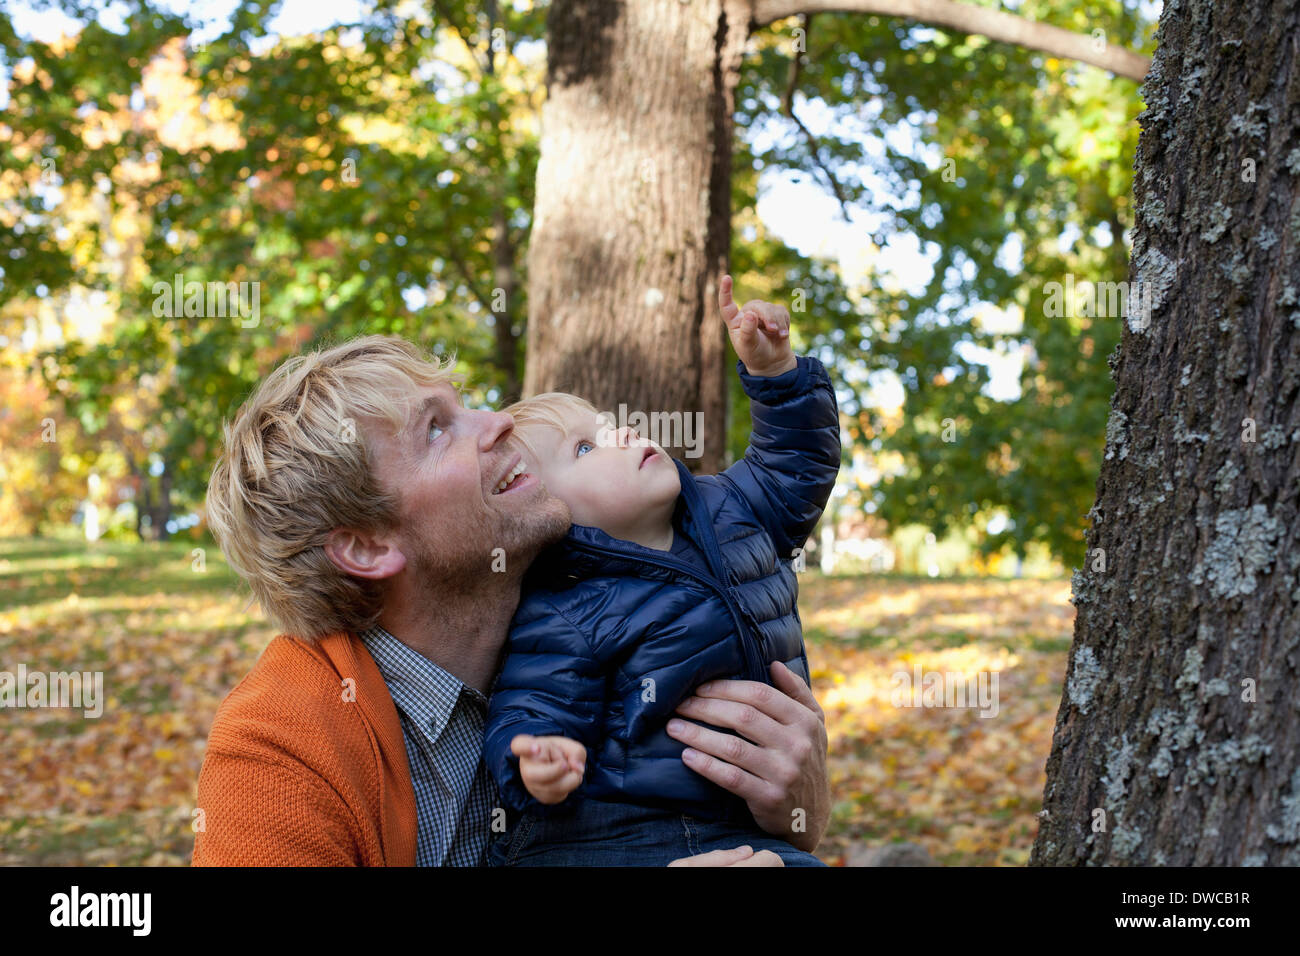 Father and son playing at bottom of tree - Stock Image